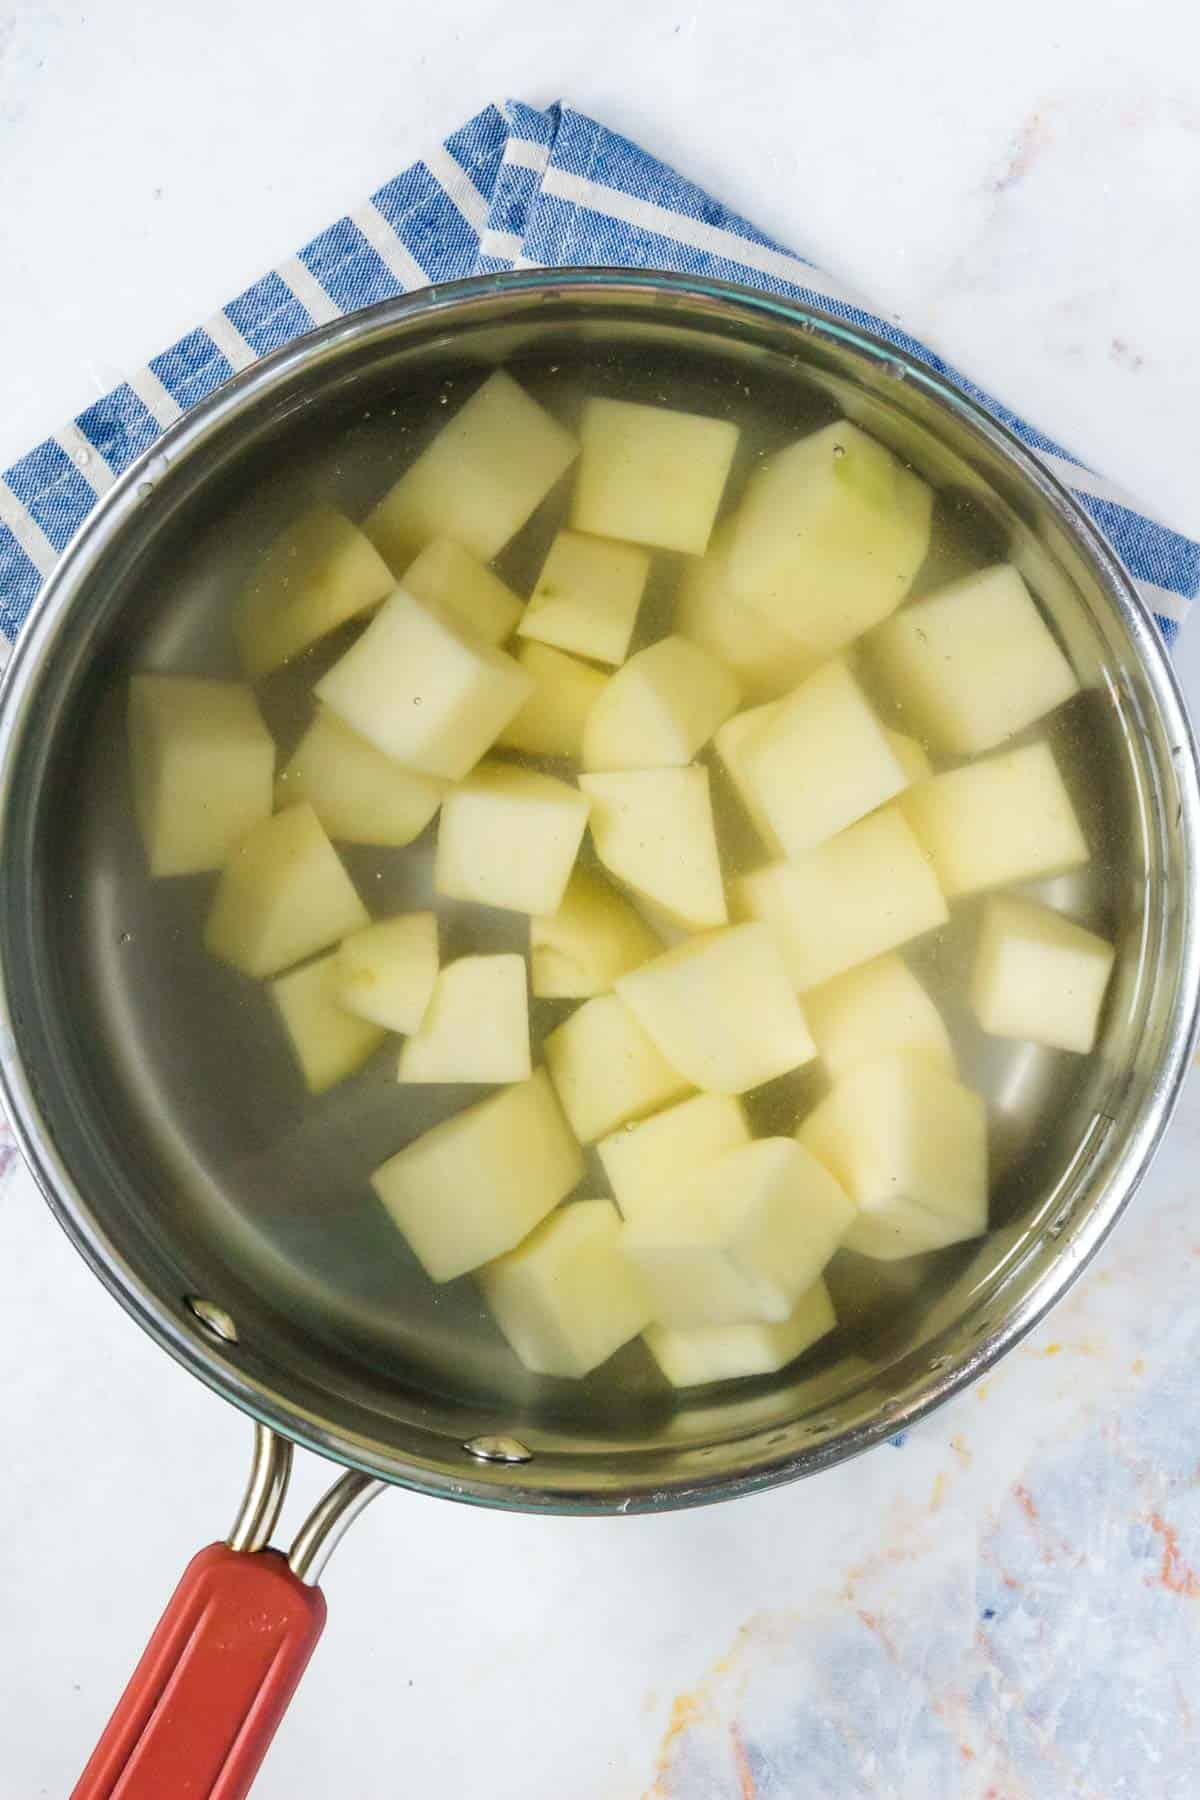 cubed potatoes in a small pot of water